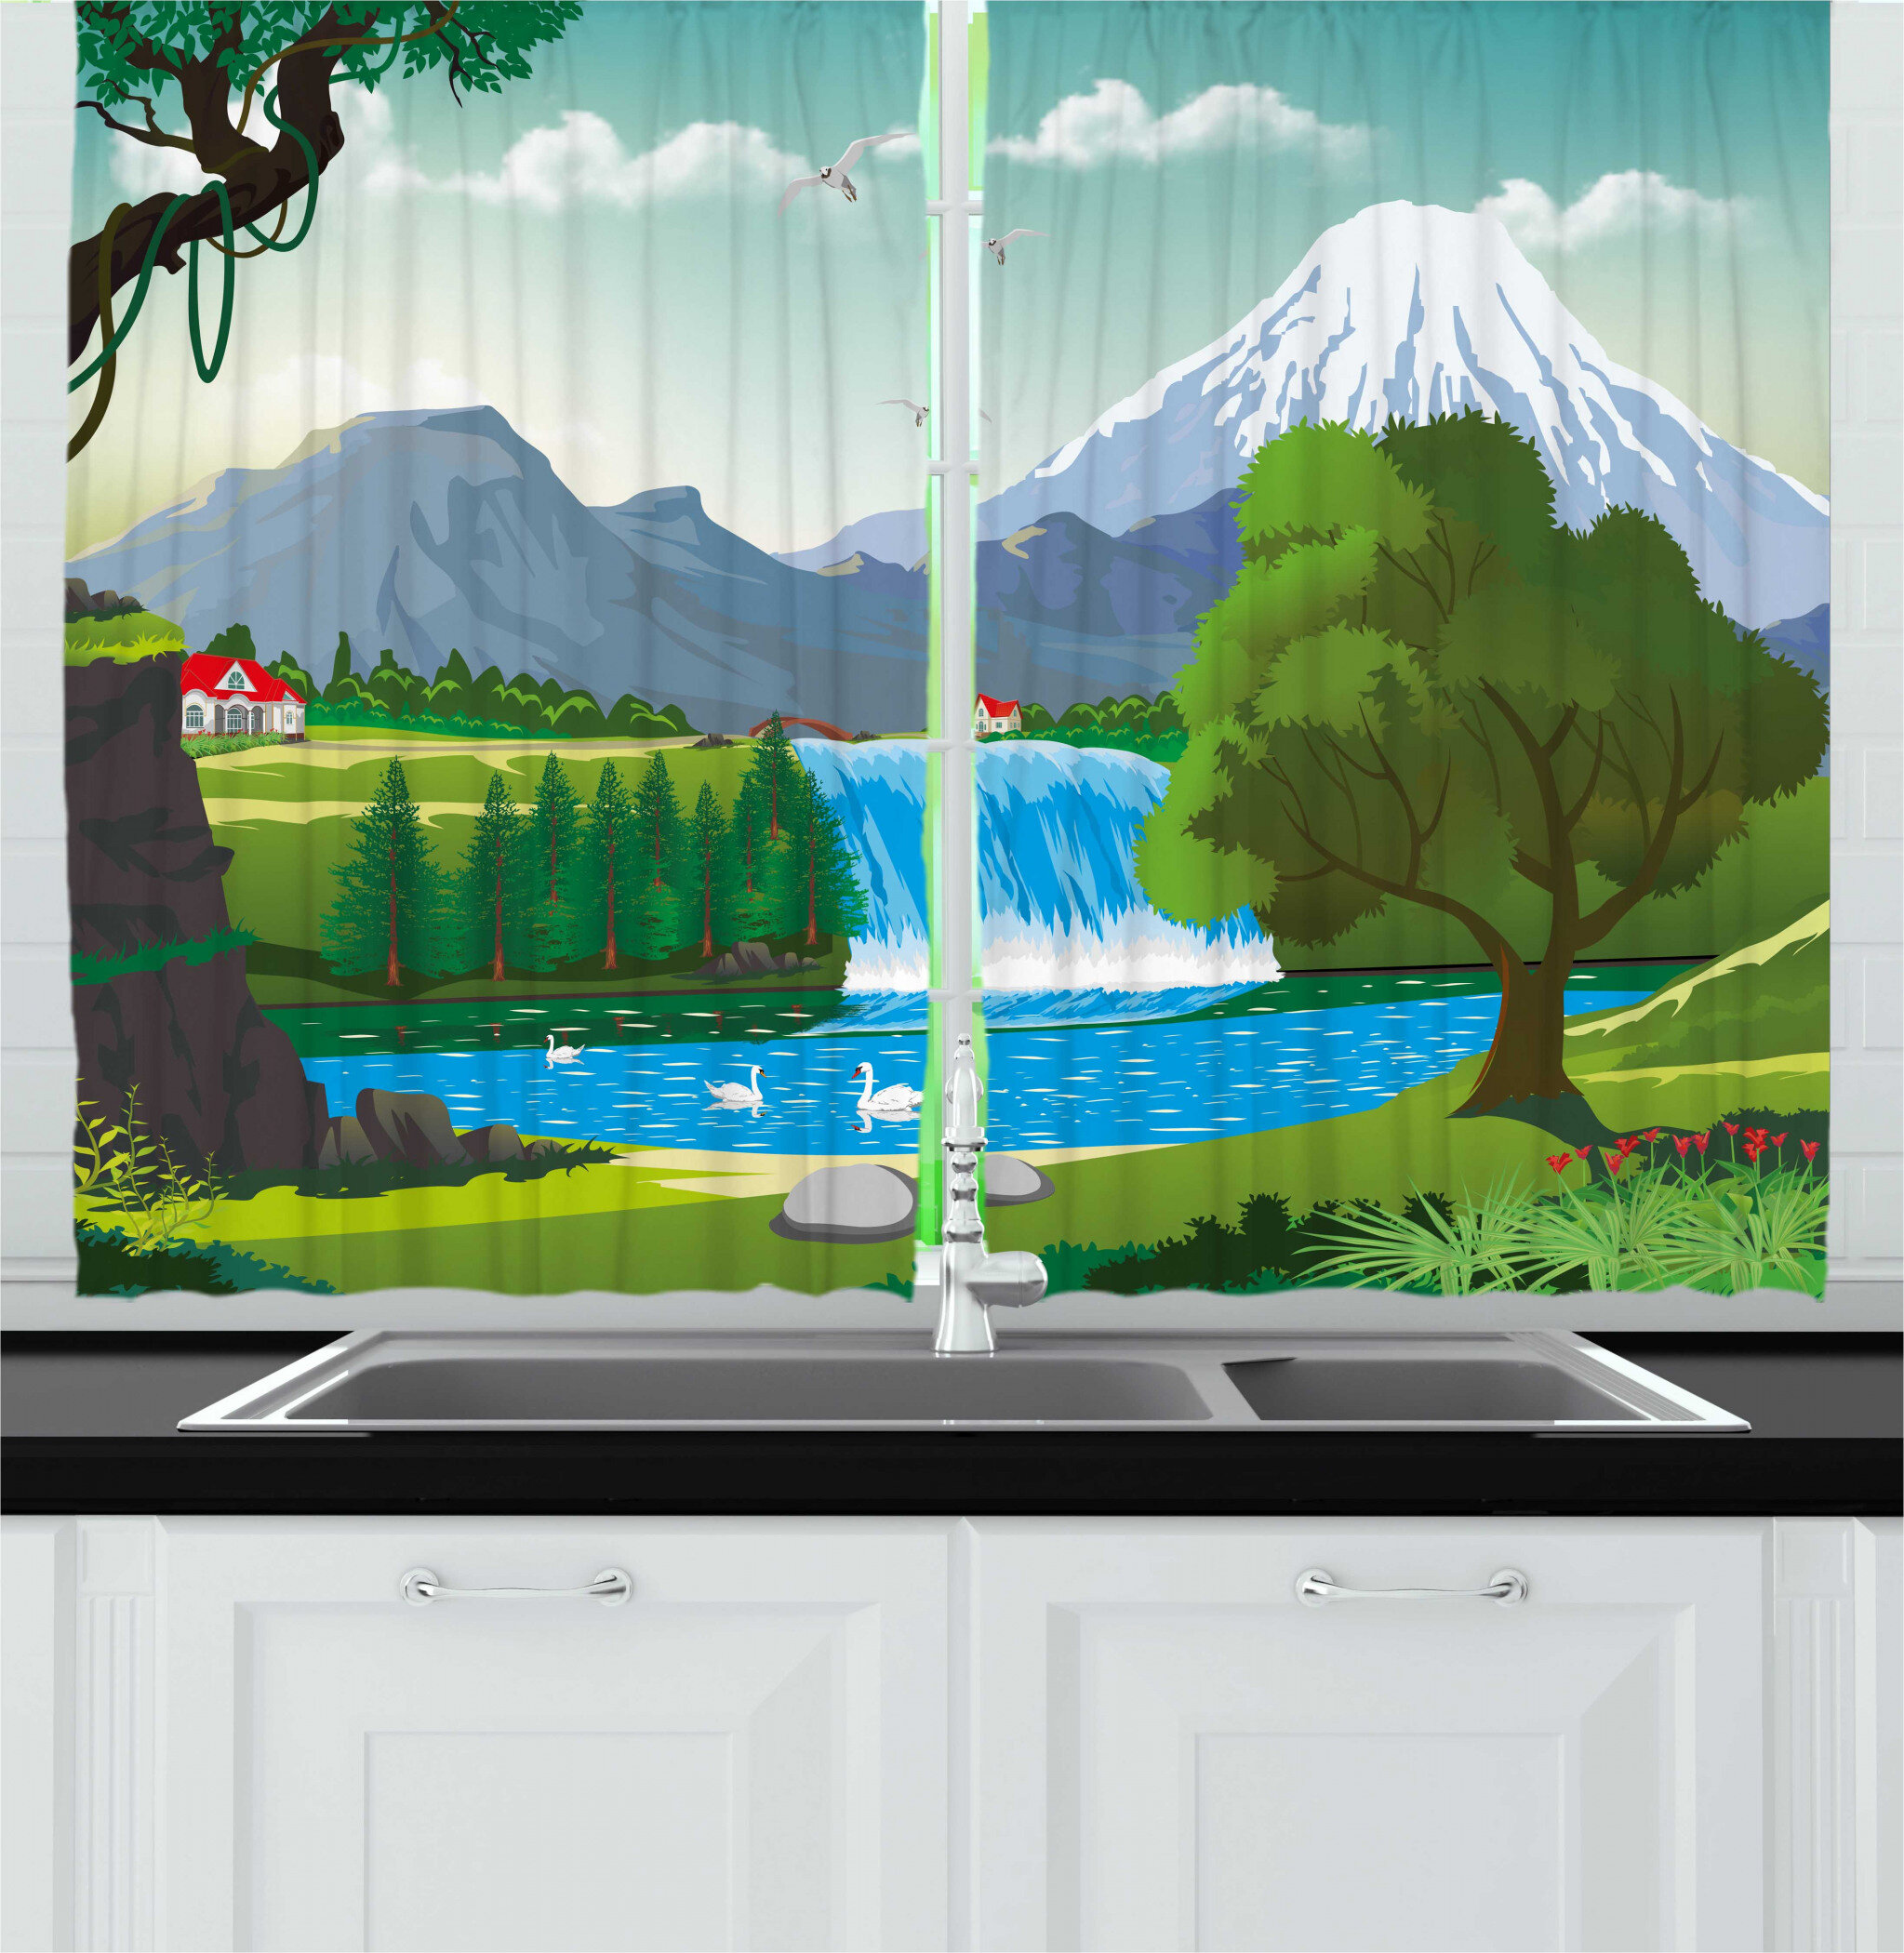 East Urban Home 2 Piece Travel Cartoon Style Landscape Of A Lake Near A Waterfall With Mountains On The Back Kitchen Curtain Set Wayfair